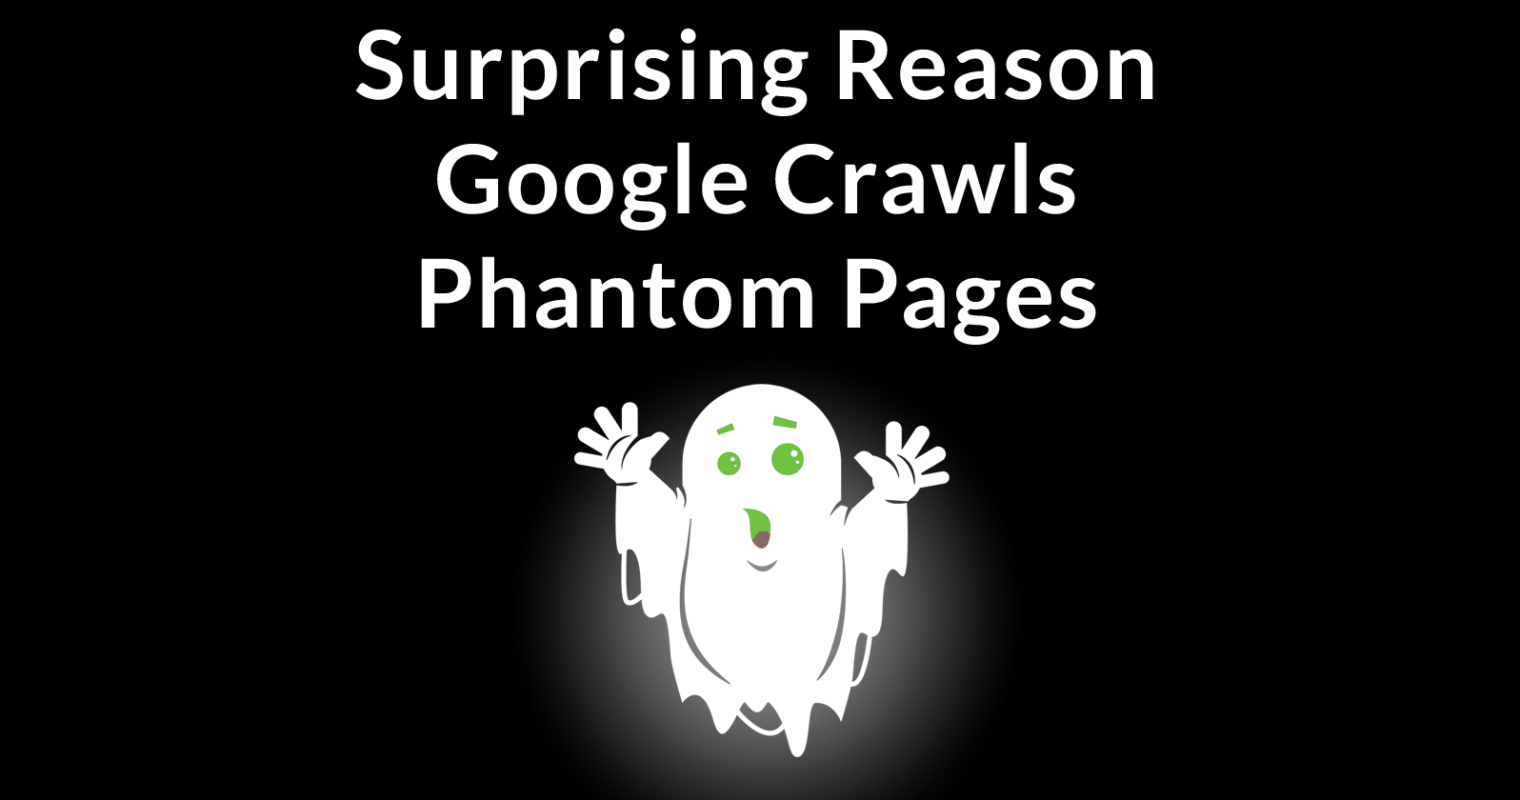 Google's John Mueller Explains Why Google Crawls Non-Existent Pages